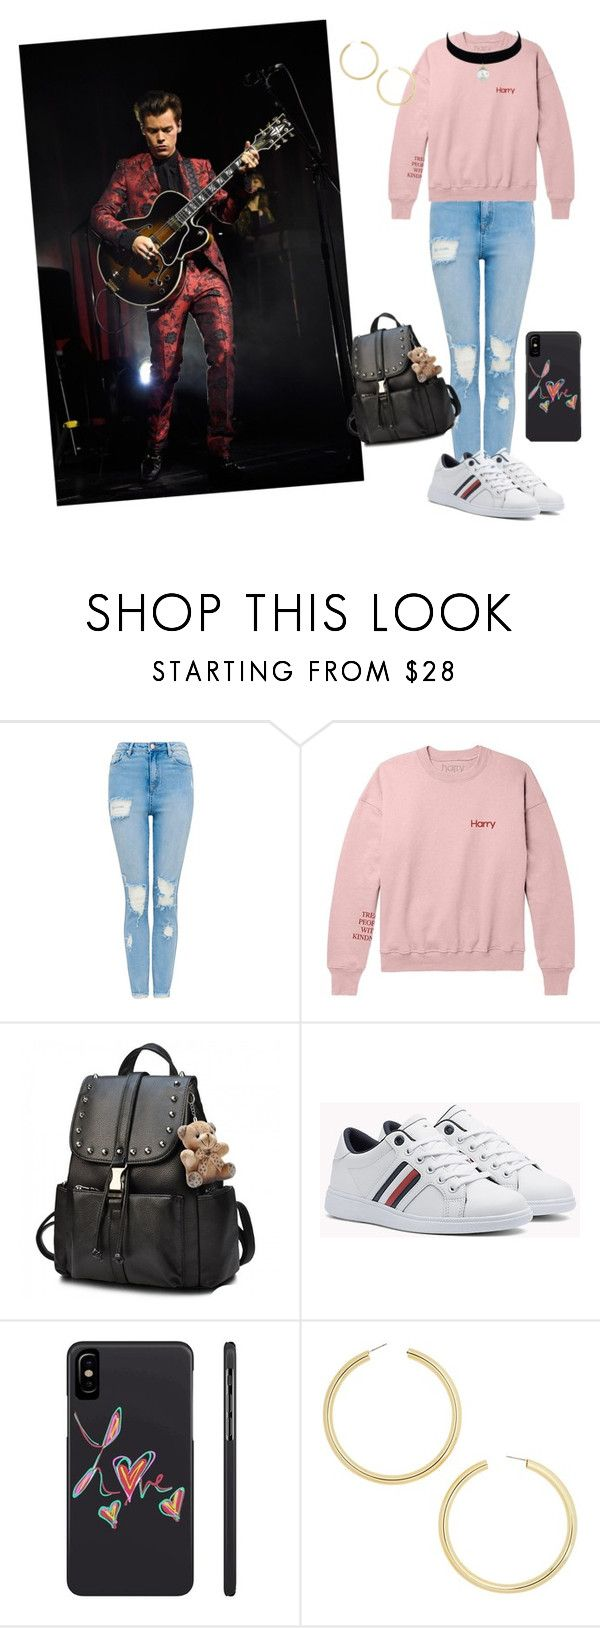 """Watching At Concert Harry Styles"" by elenadreams99 ❤ liked on Polyvore featuring BaubleBar"